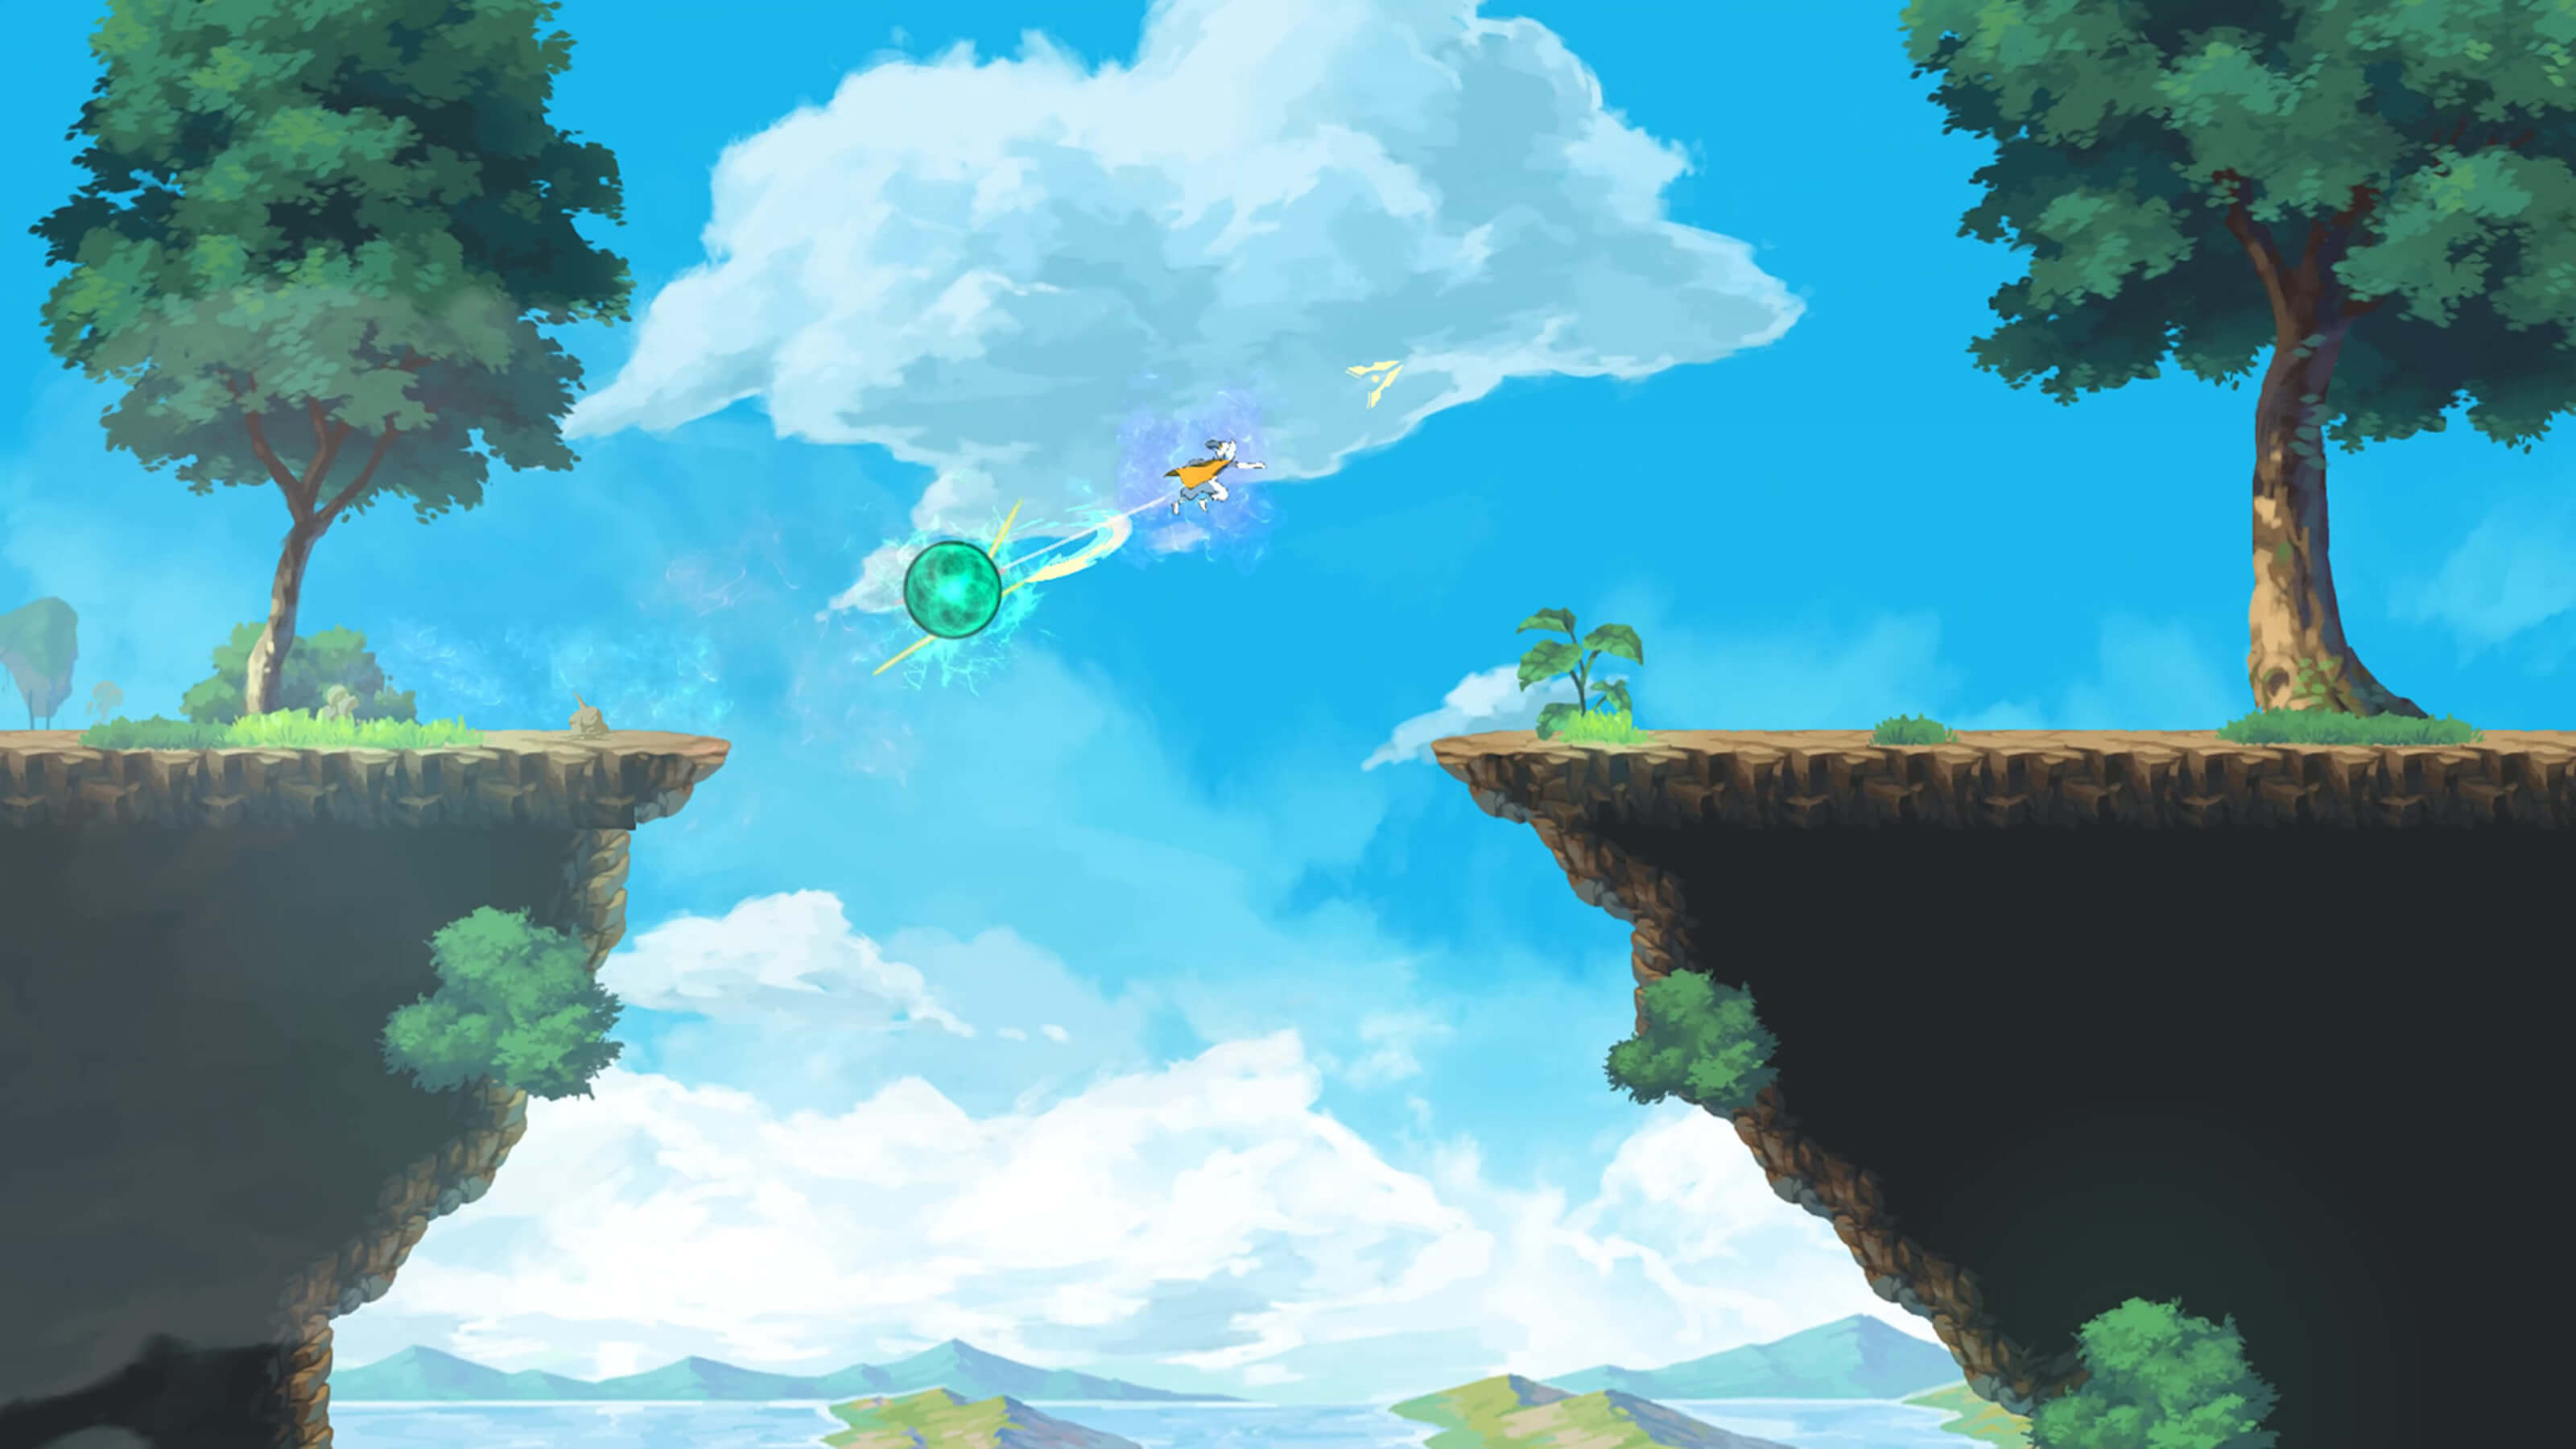 A character leaps over a chasm in the sky